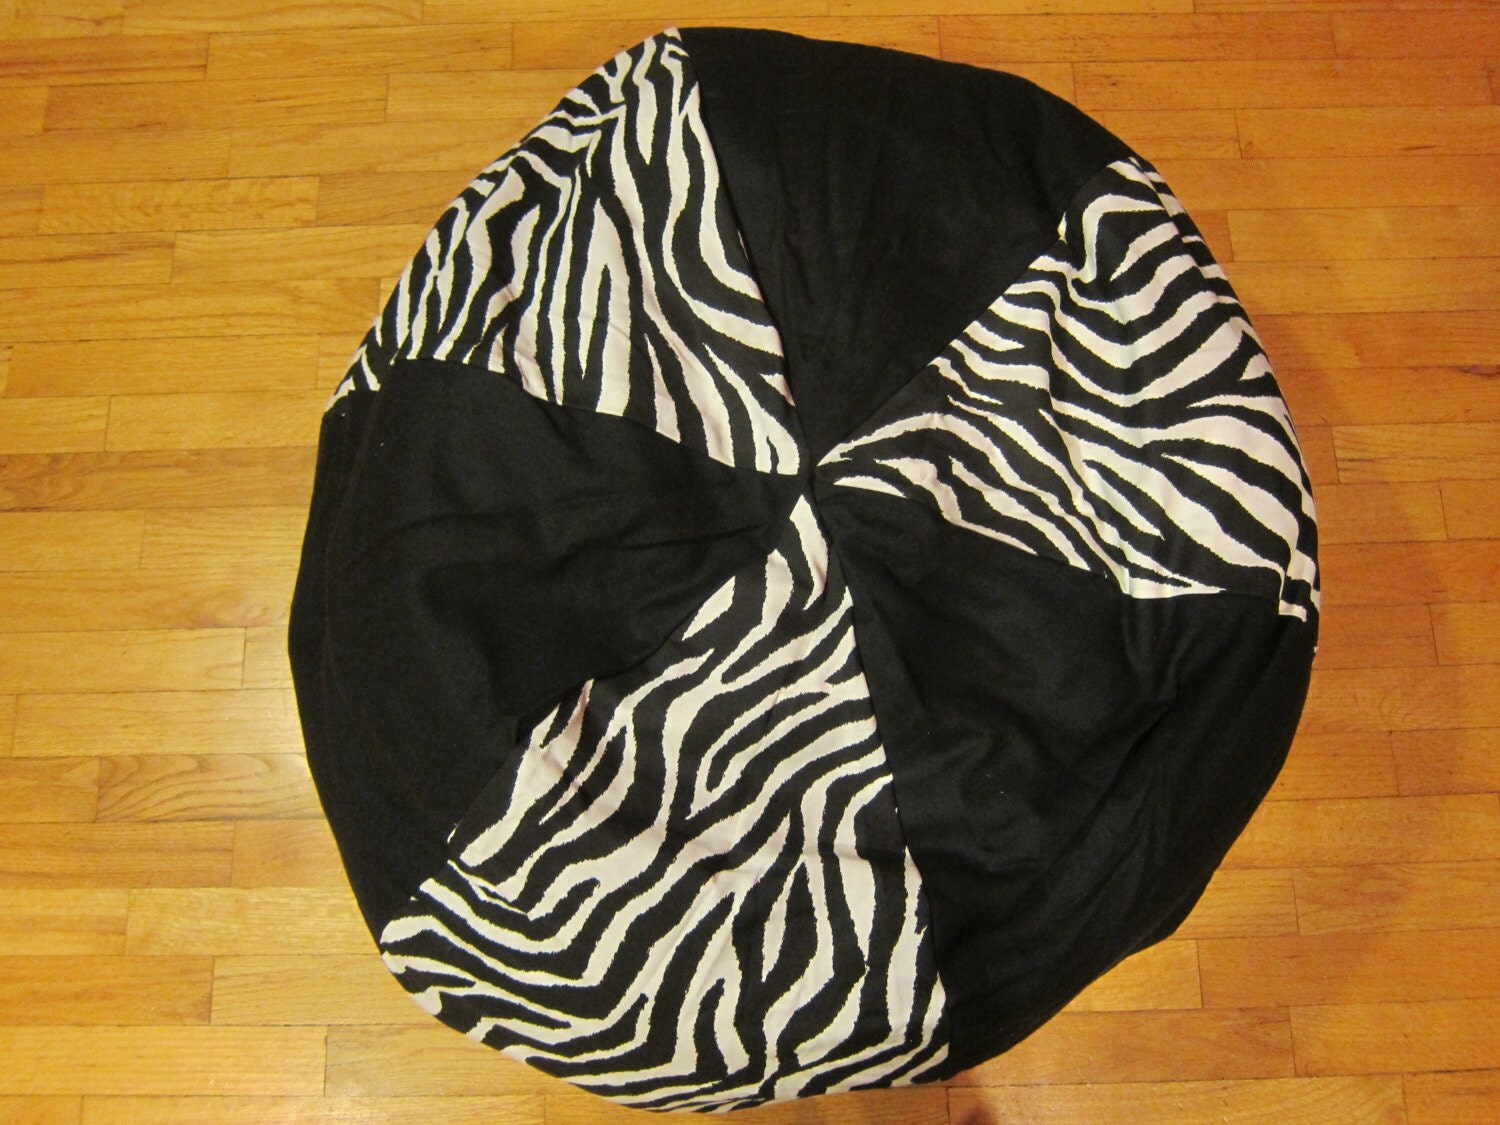 Bean Bag Chair Cover Zebra Bean Bag Chair Cover Black And White By Copperbugcompany